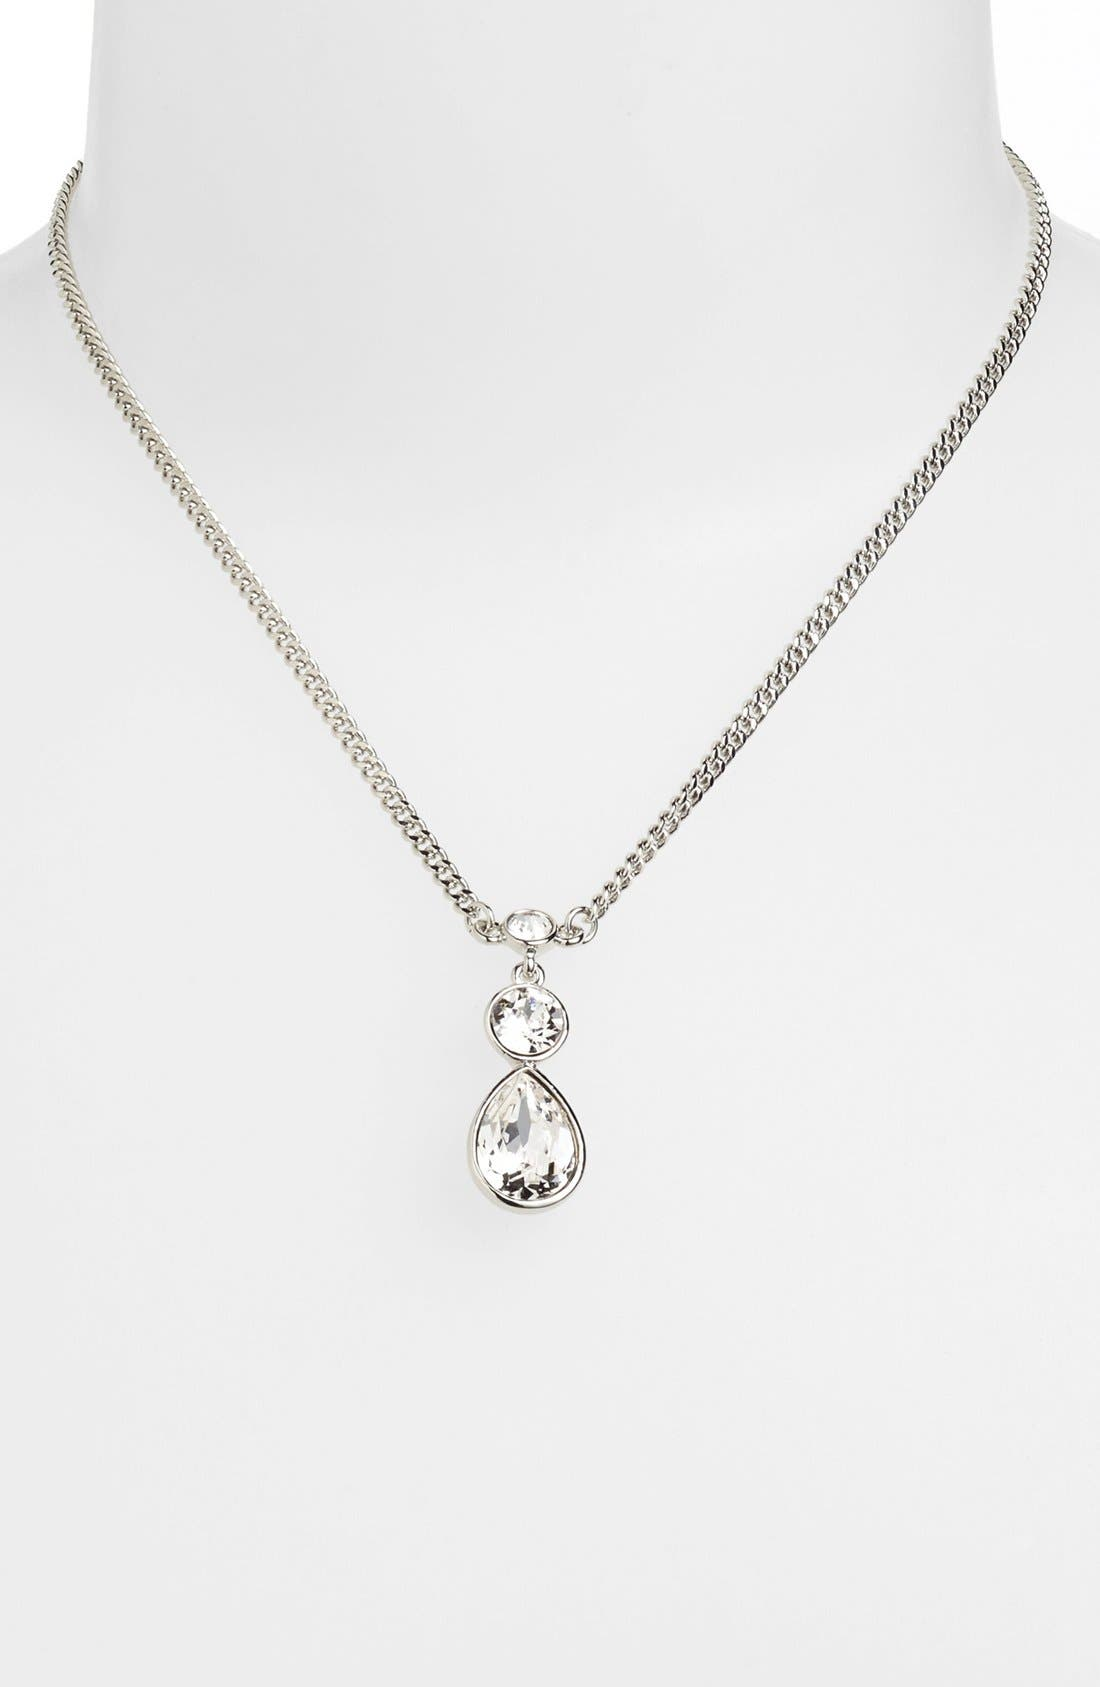 Main Image - Givenchy Crystal Pendant Necklace (Nordstrom Exclusive)